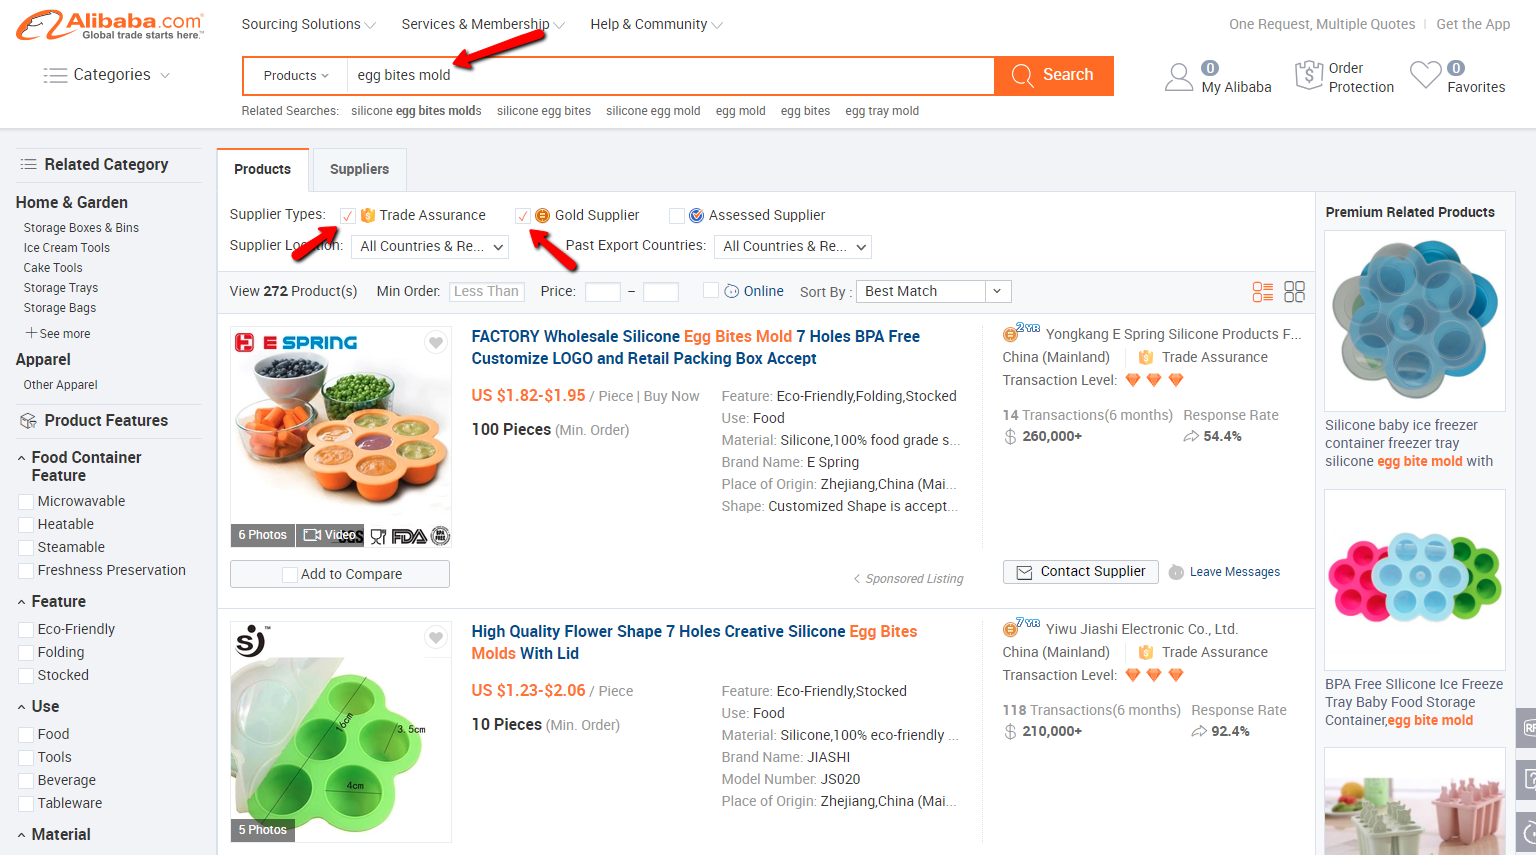 Alibaba-amzfoster_day4-sourcing